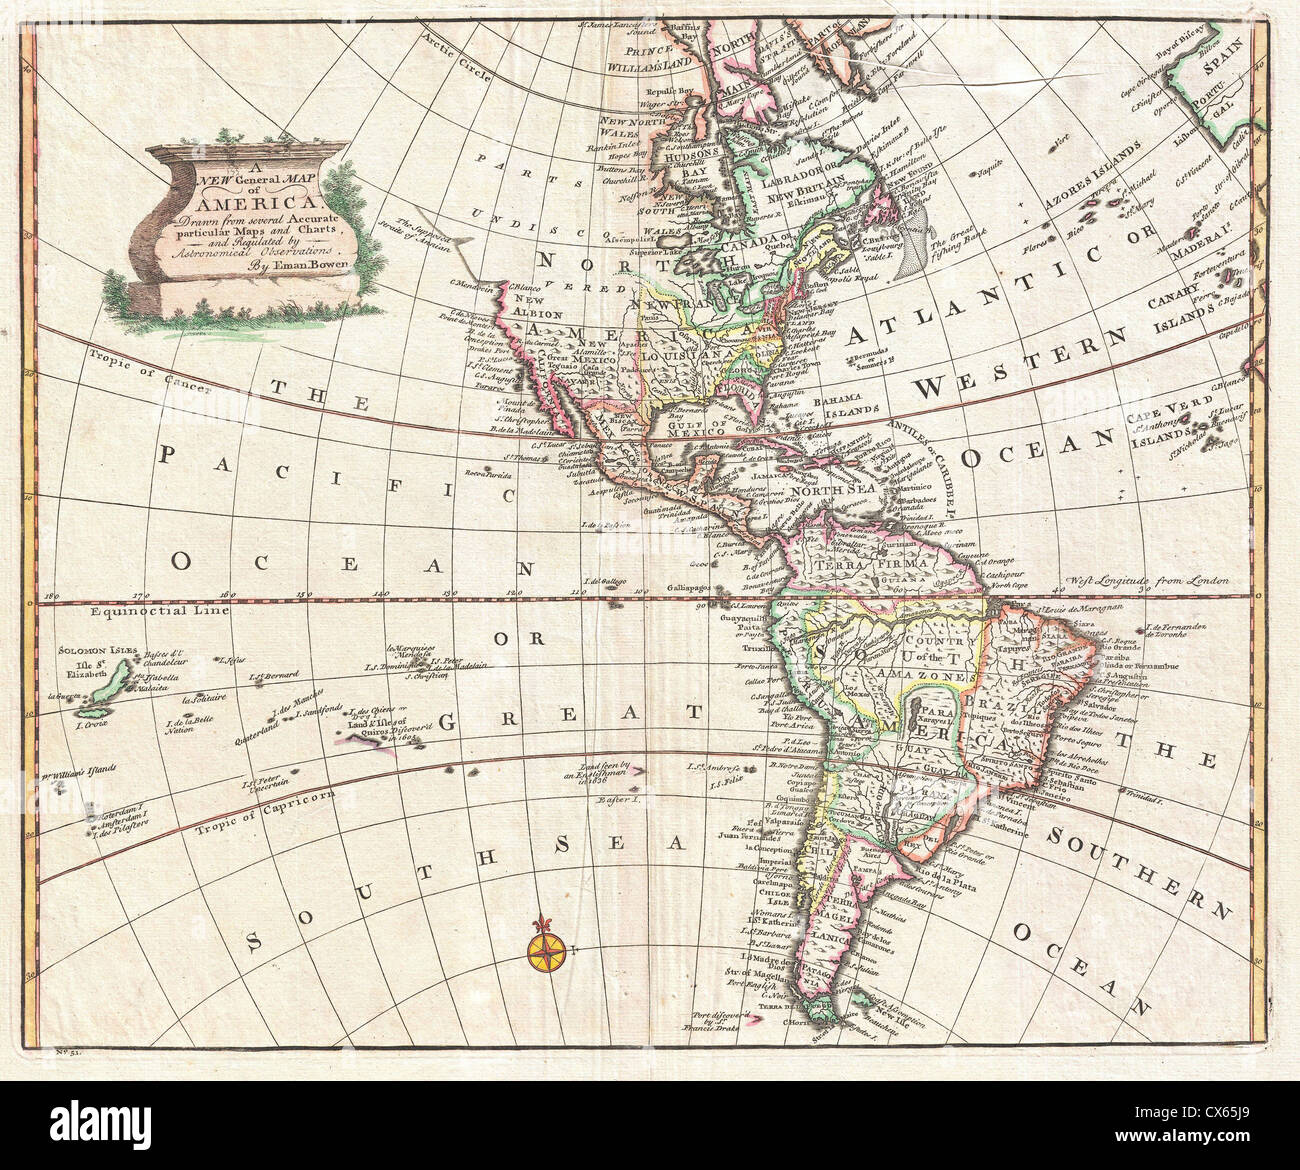 Western North America Map.1747 Bowen Map Of North America And South America Western Stock